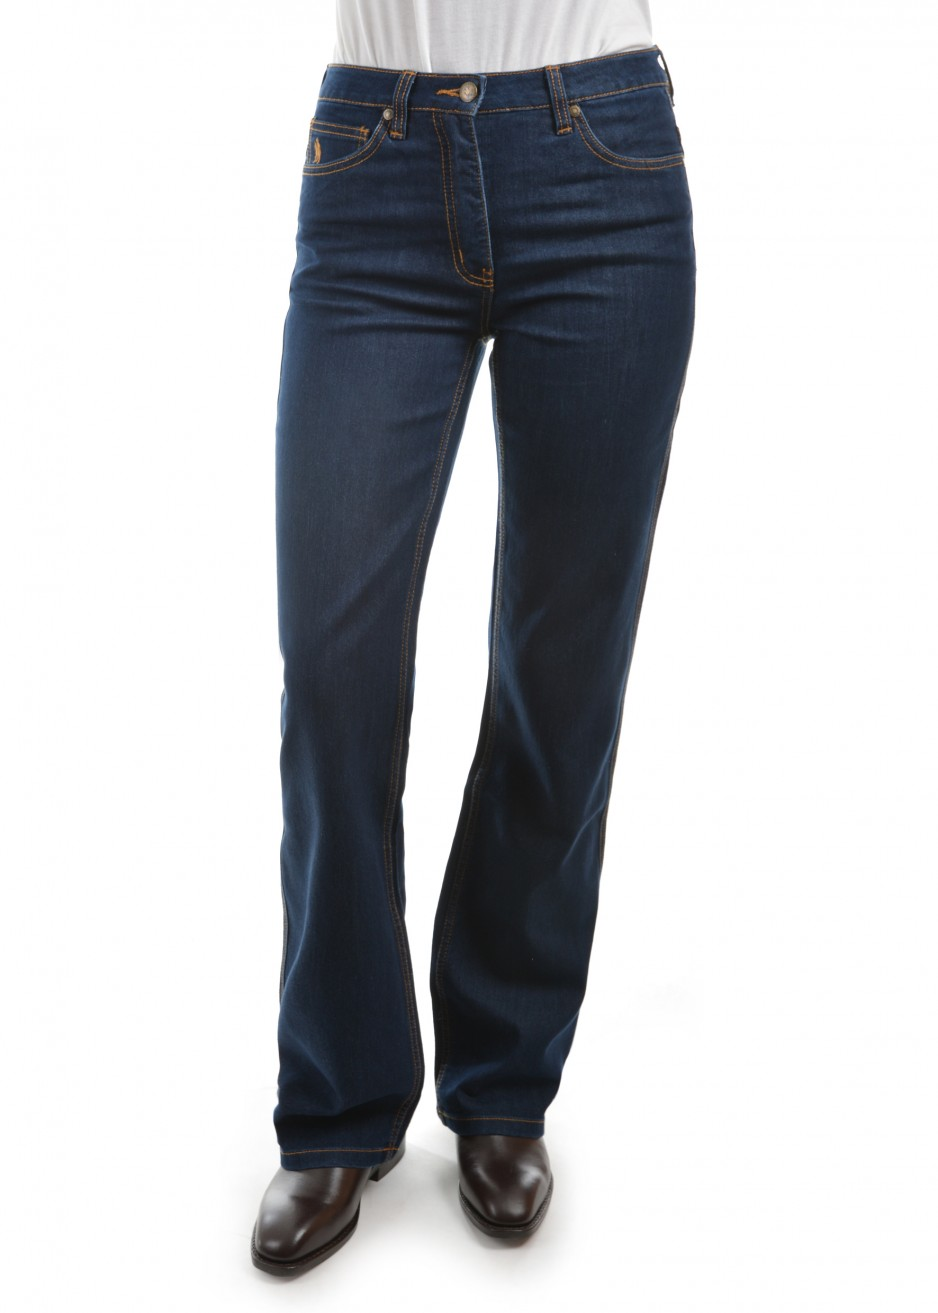 WOMENS STRETCH DENIM WONDER JEAN-MID-REG-BOOT 34 LEG